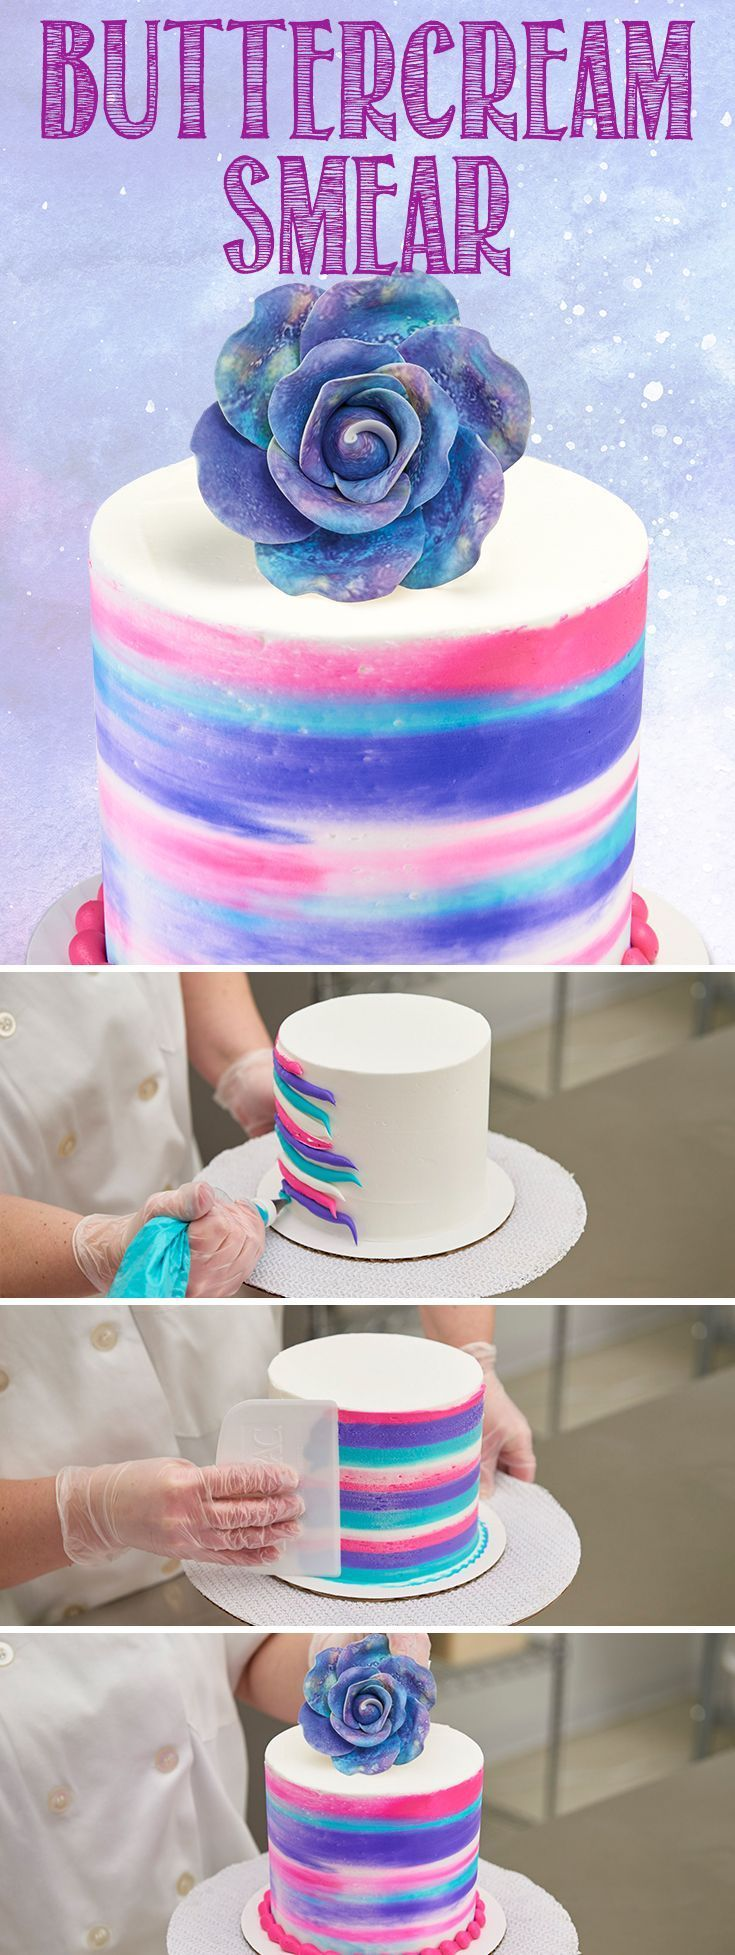 Pipe large bands of colored buttercream icing. THen use an icing scraper to pull and blend the different colors around the cake. This multi-colored smear creates a beautiful, natural look that's unique every time. #cakedecoratingtechniques